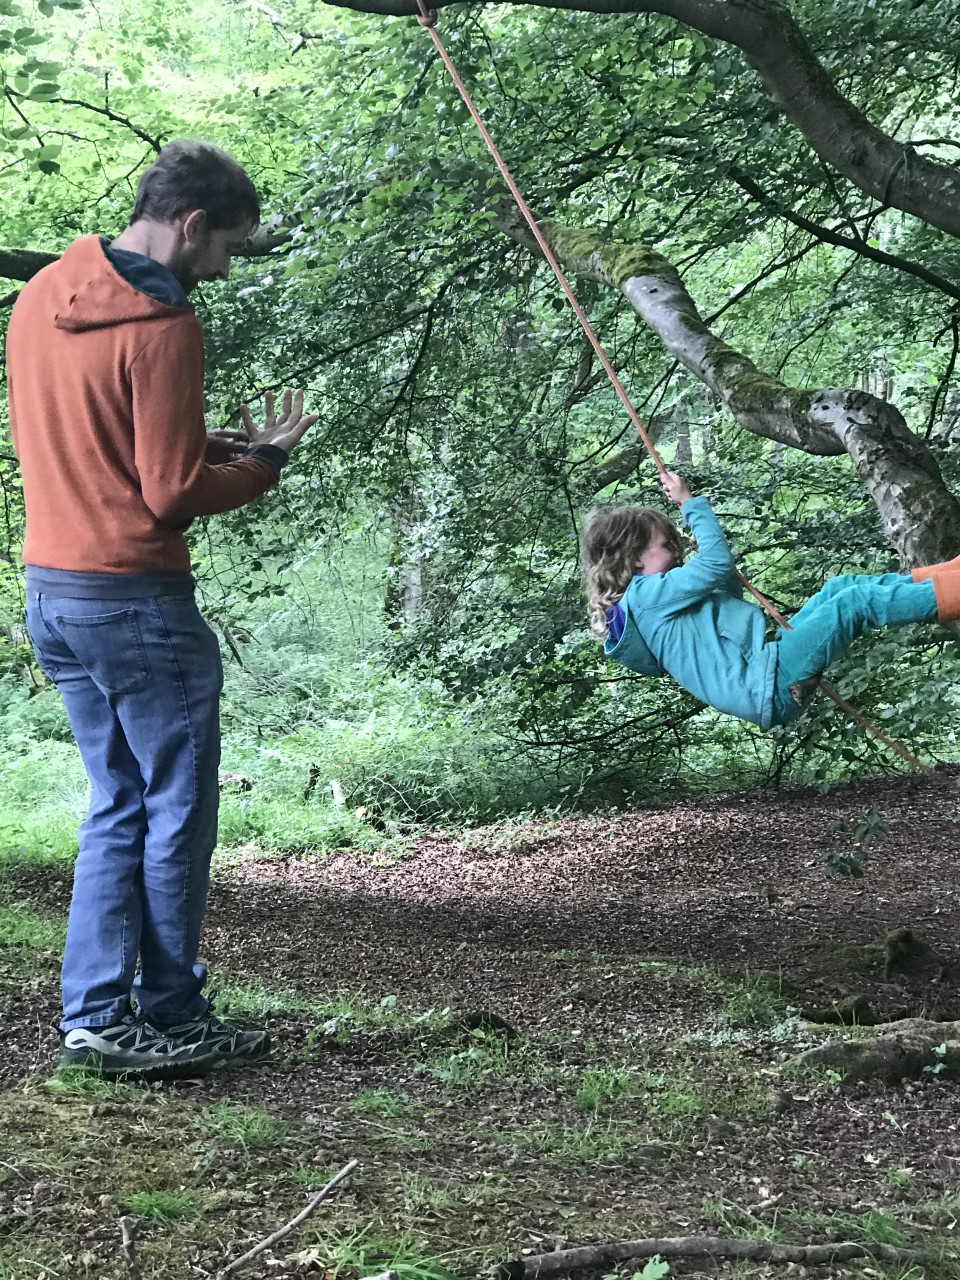 DIY rope swing in the woods